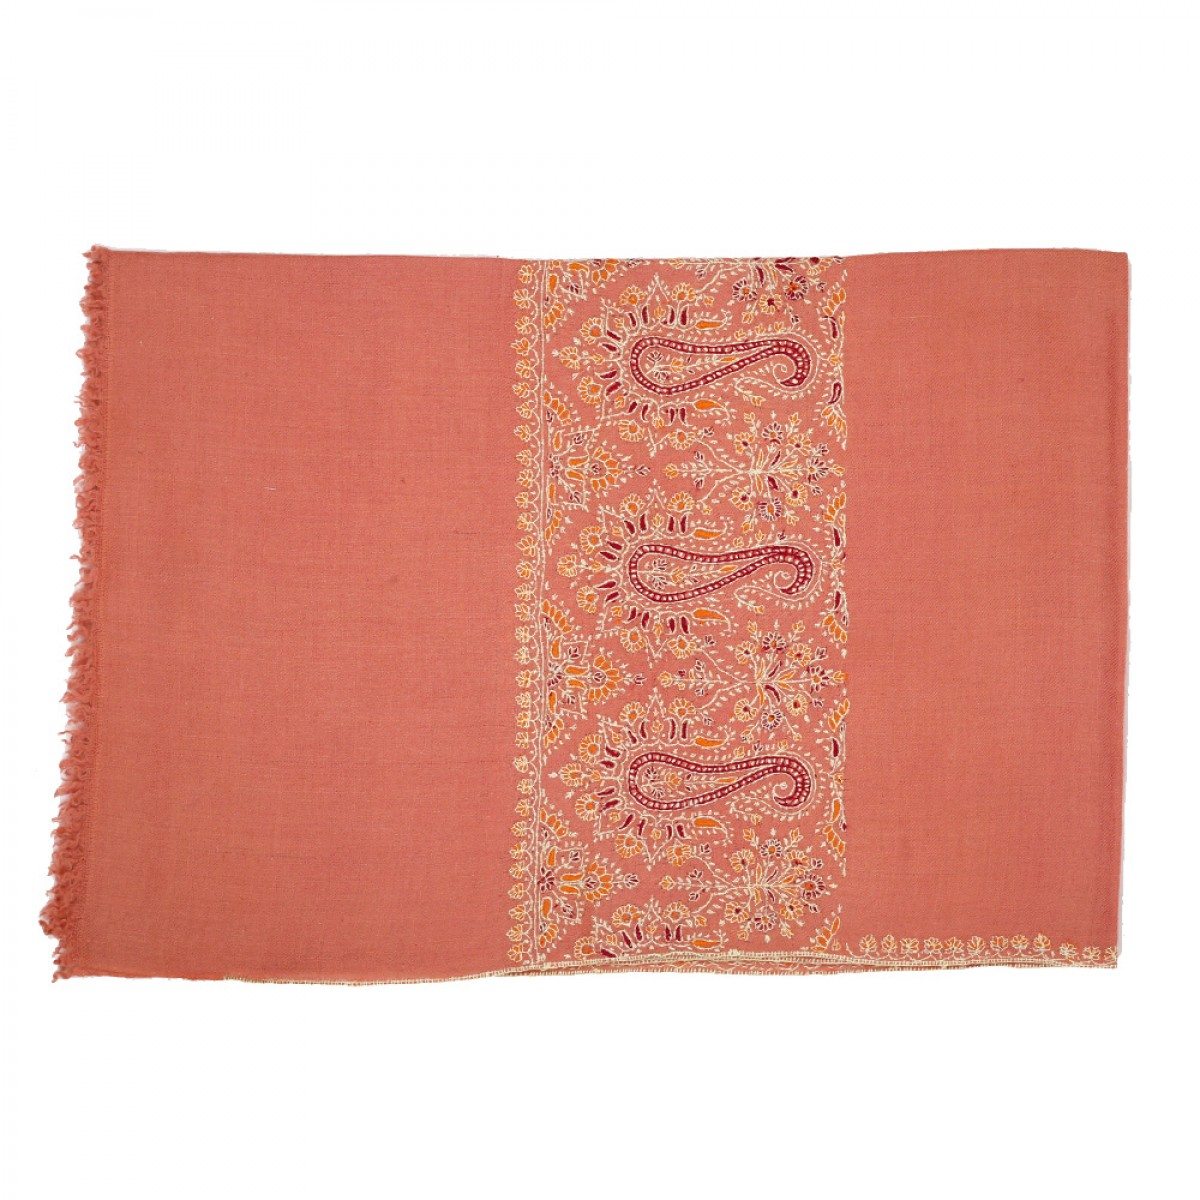 Embroidered Pashmina Stole - Rose Cerise